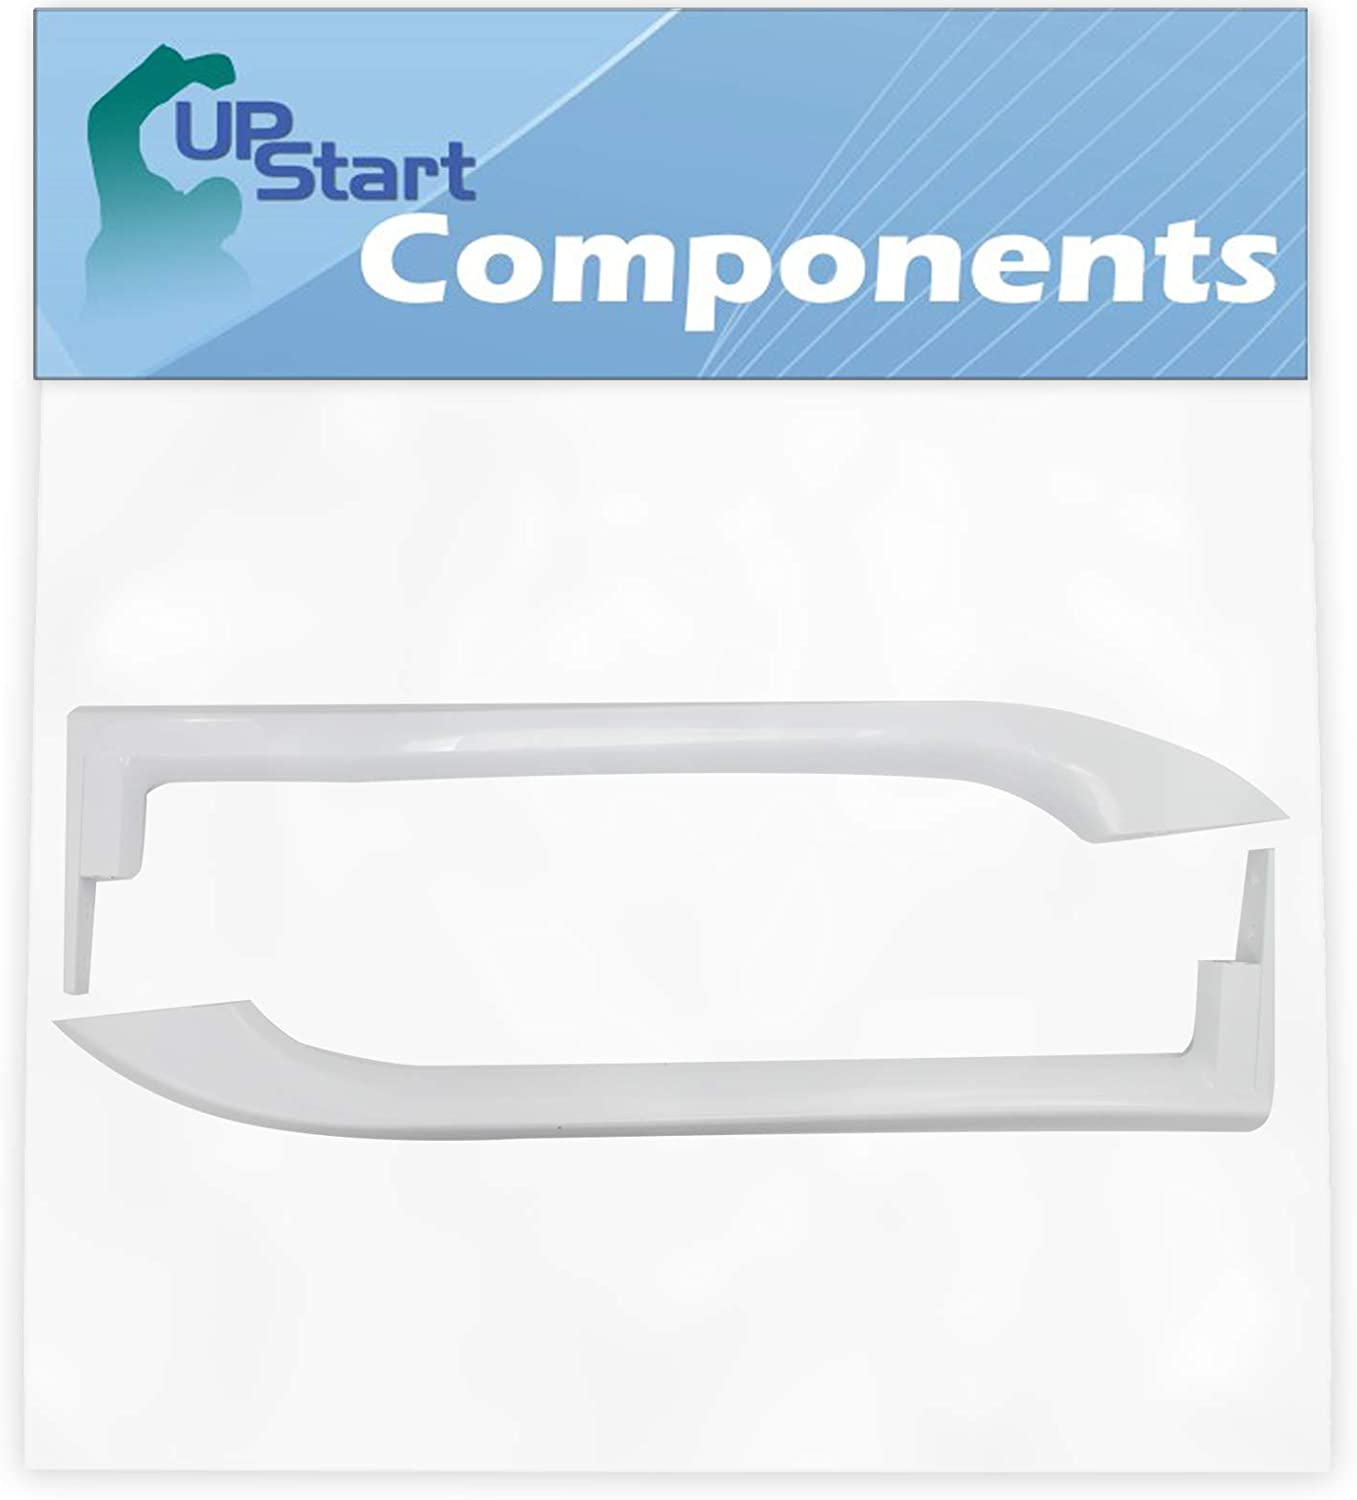 5304486359 Refrigerator Door Handles Set Replacement for Frigidaire FFHT2117LW7 Refrigerator - Compatible with 5304486359 White Door Handles - UpStart Components Brand